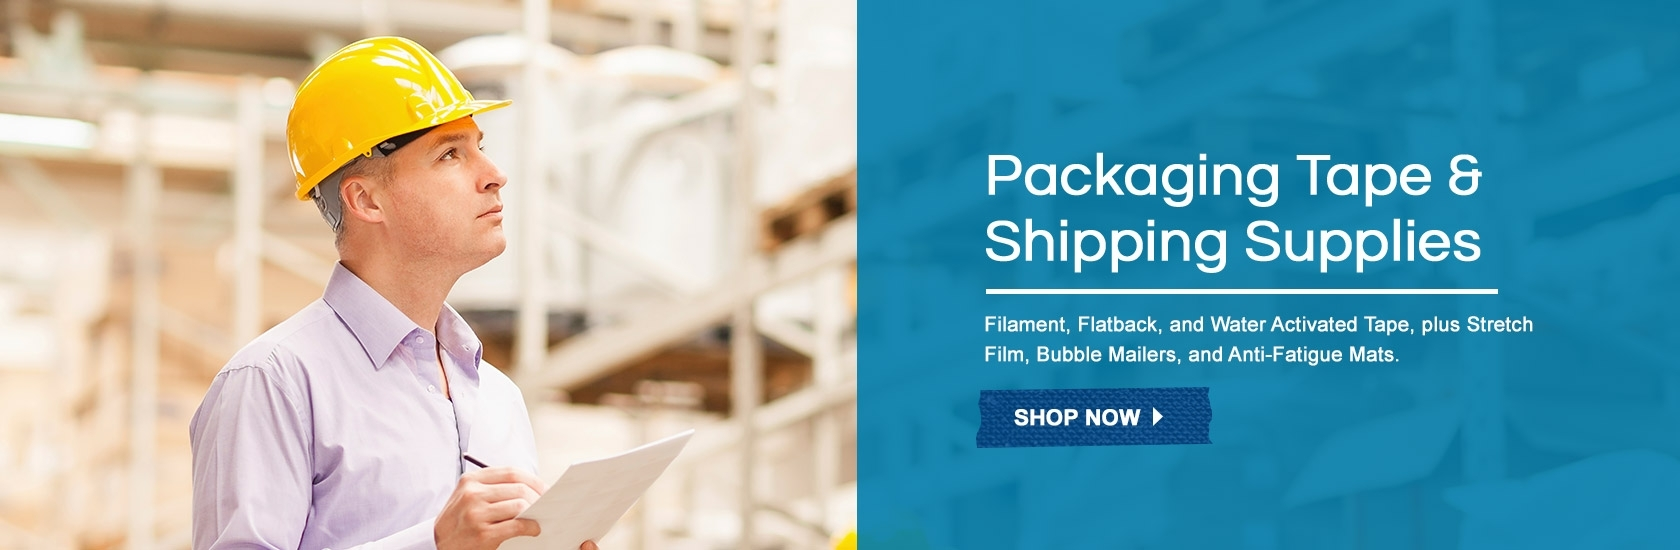 Packaging Tape & Shipping Supplies